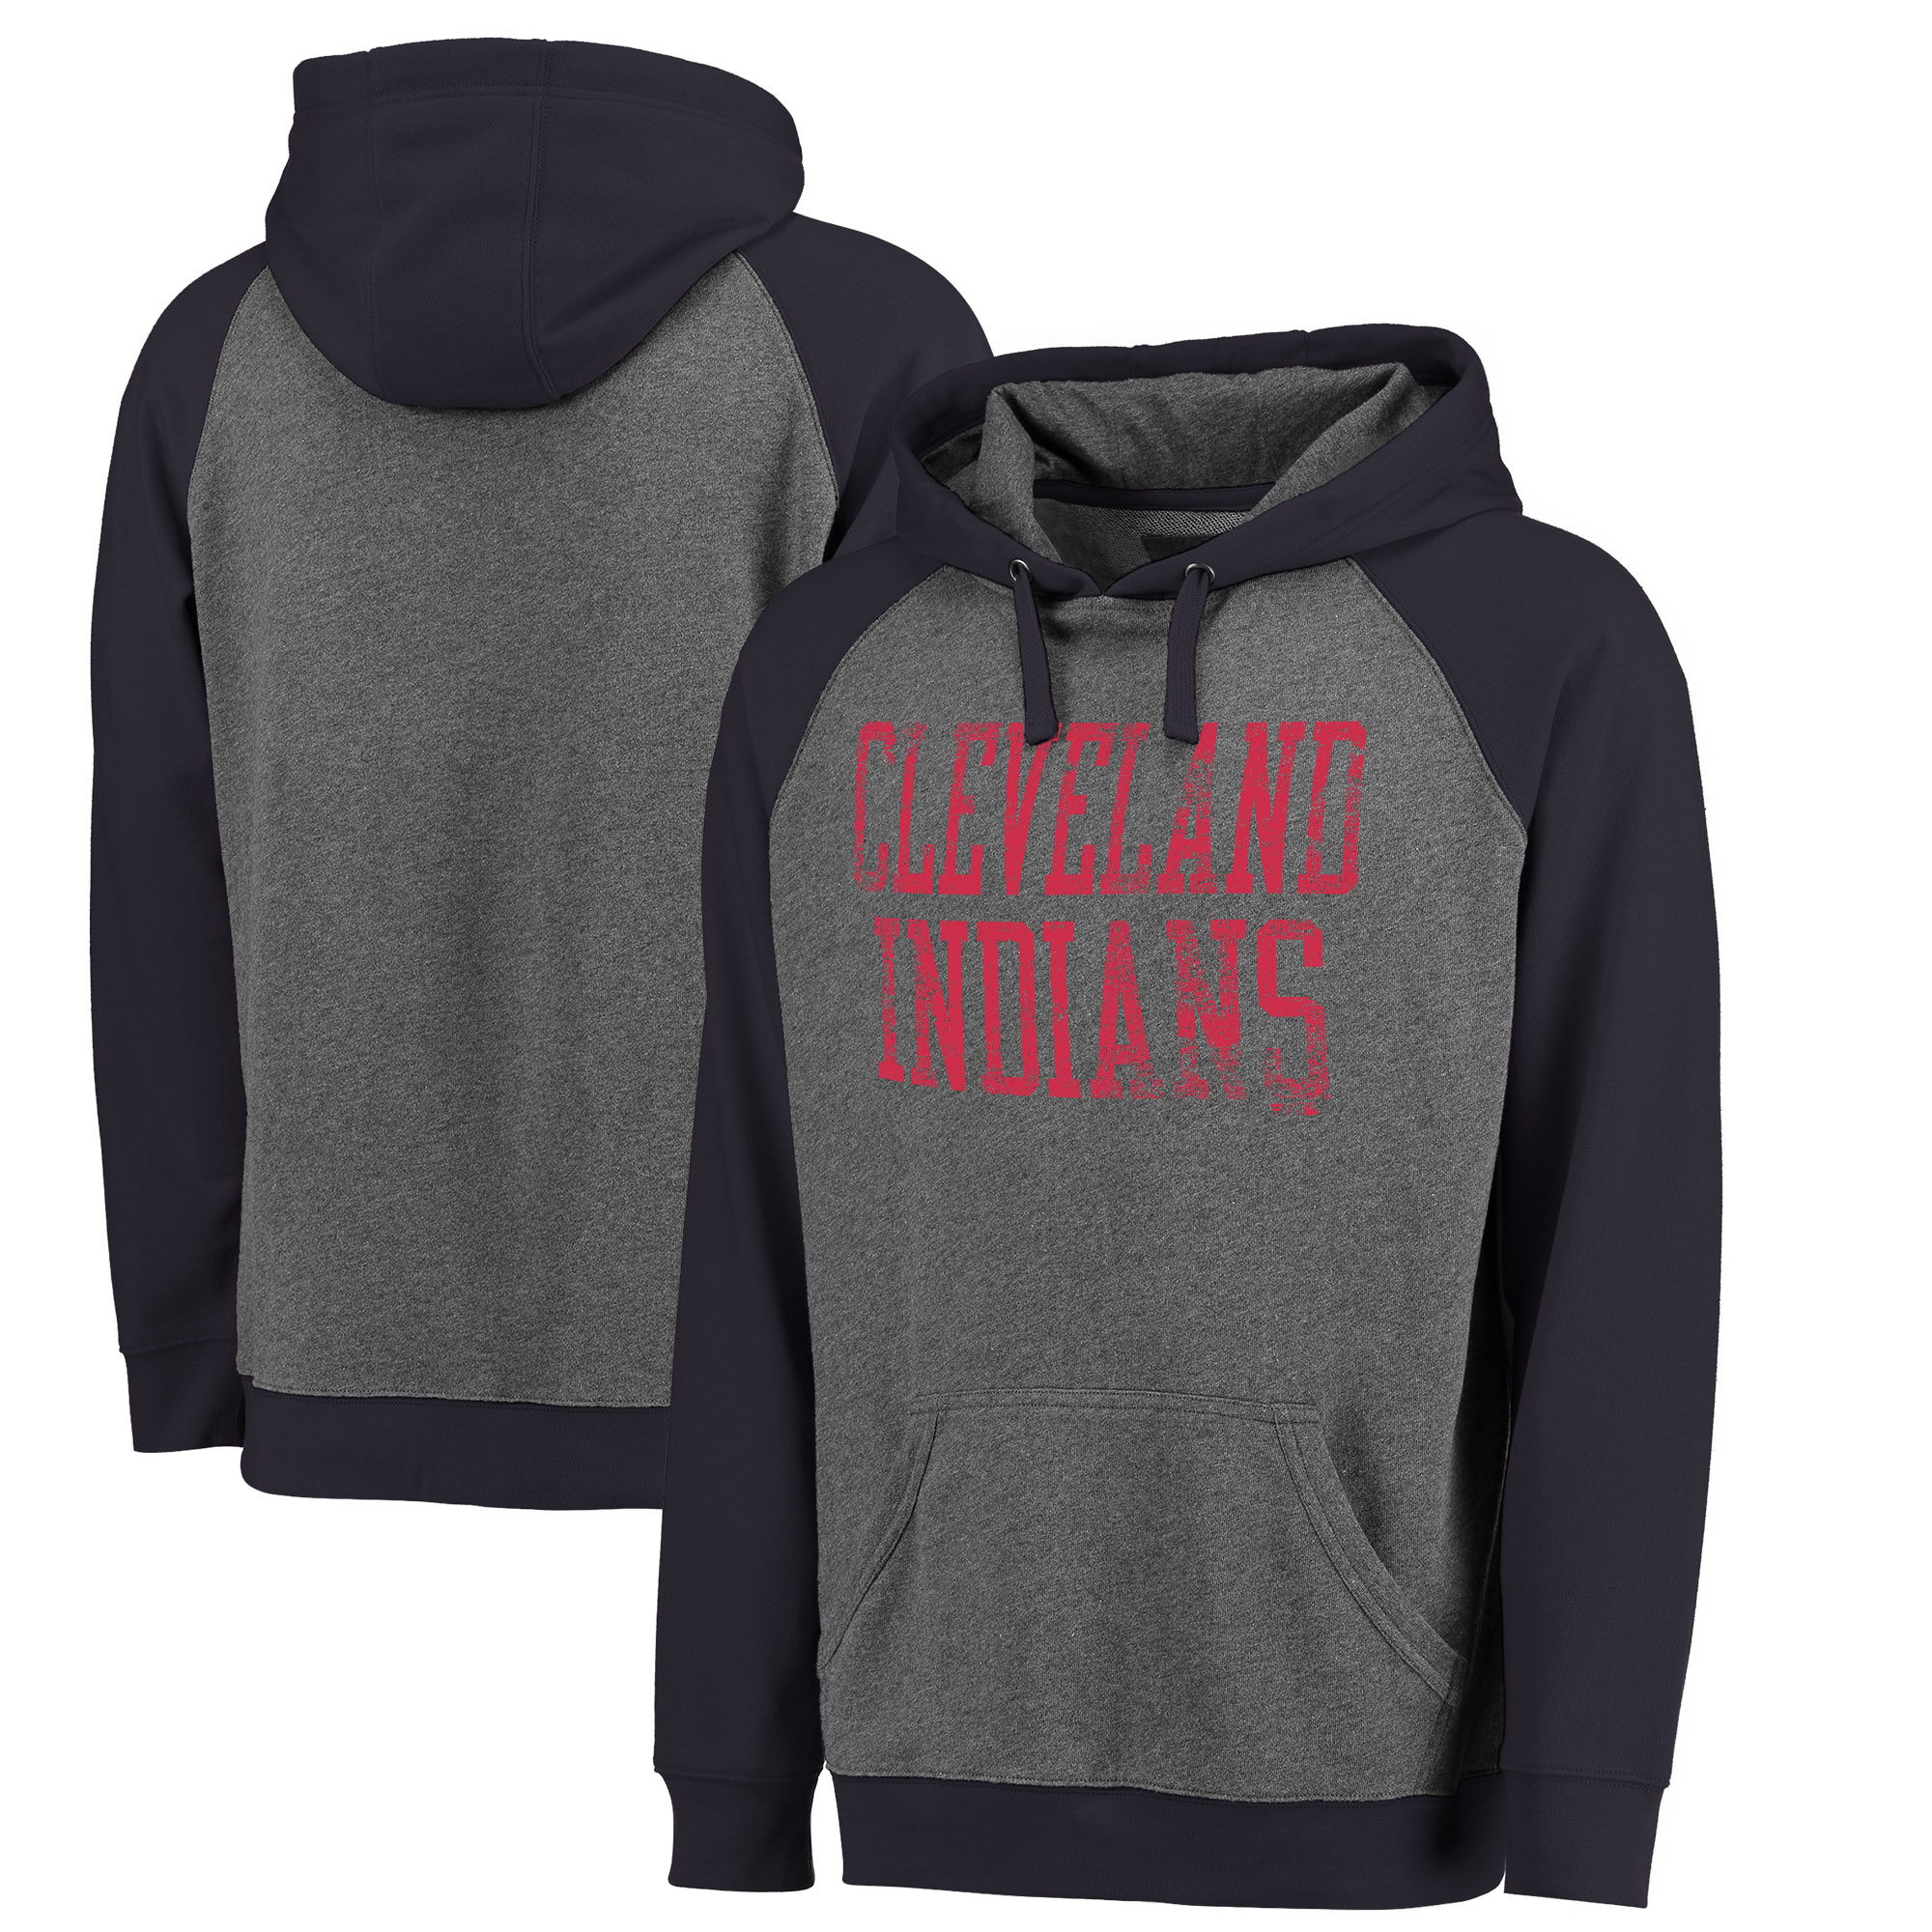 Cleveland Indians Fanatics Branded Straight Out Two-Tone Pullover Hoodie - Gray/Navy